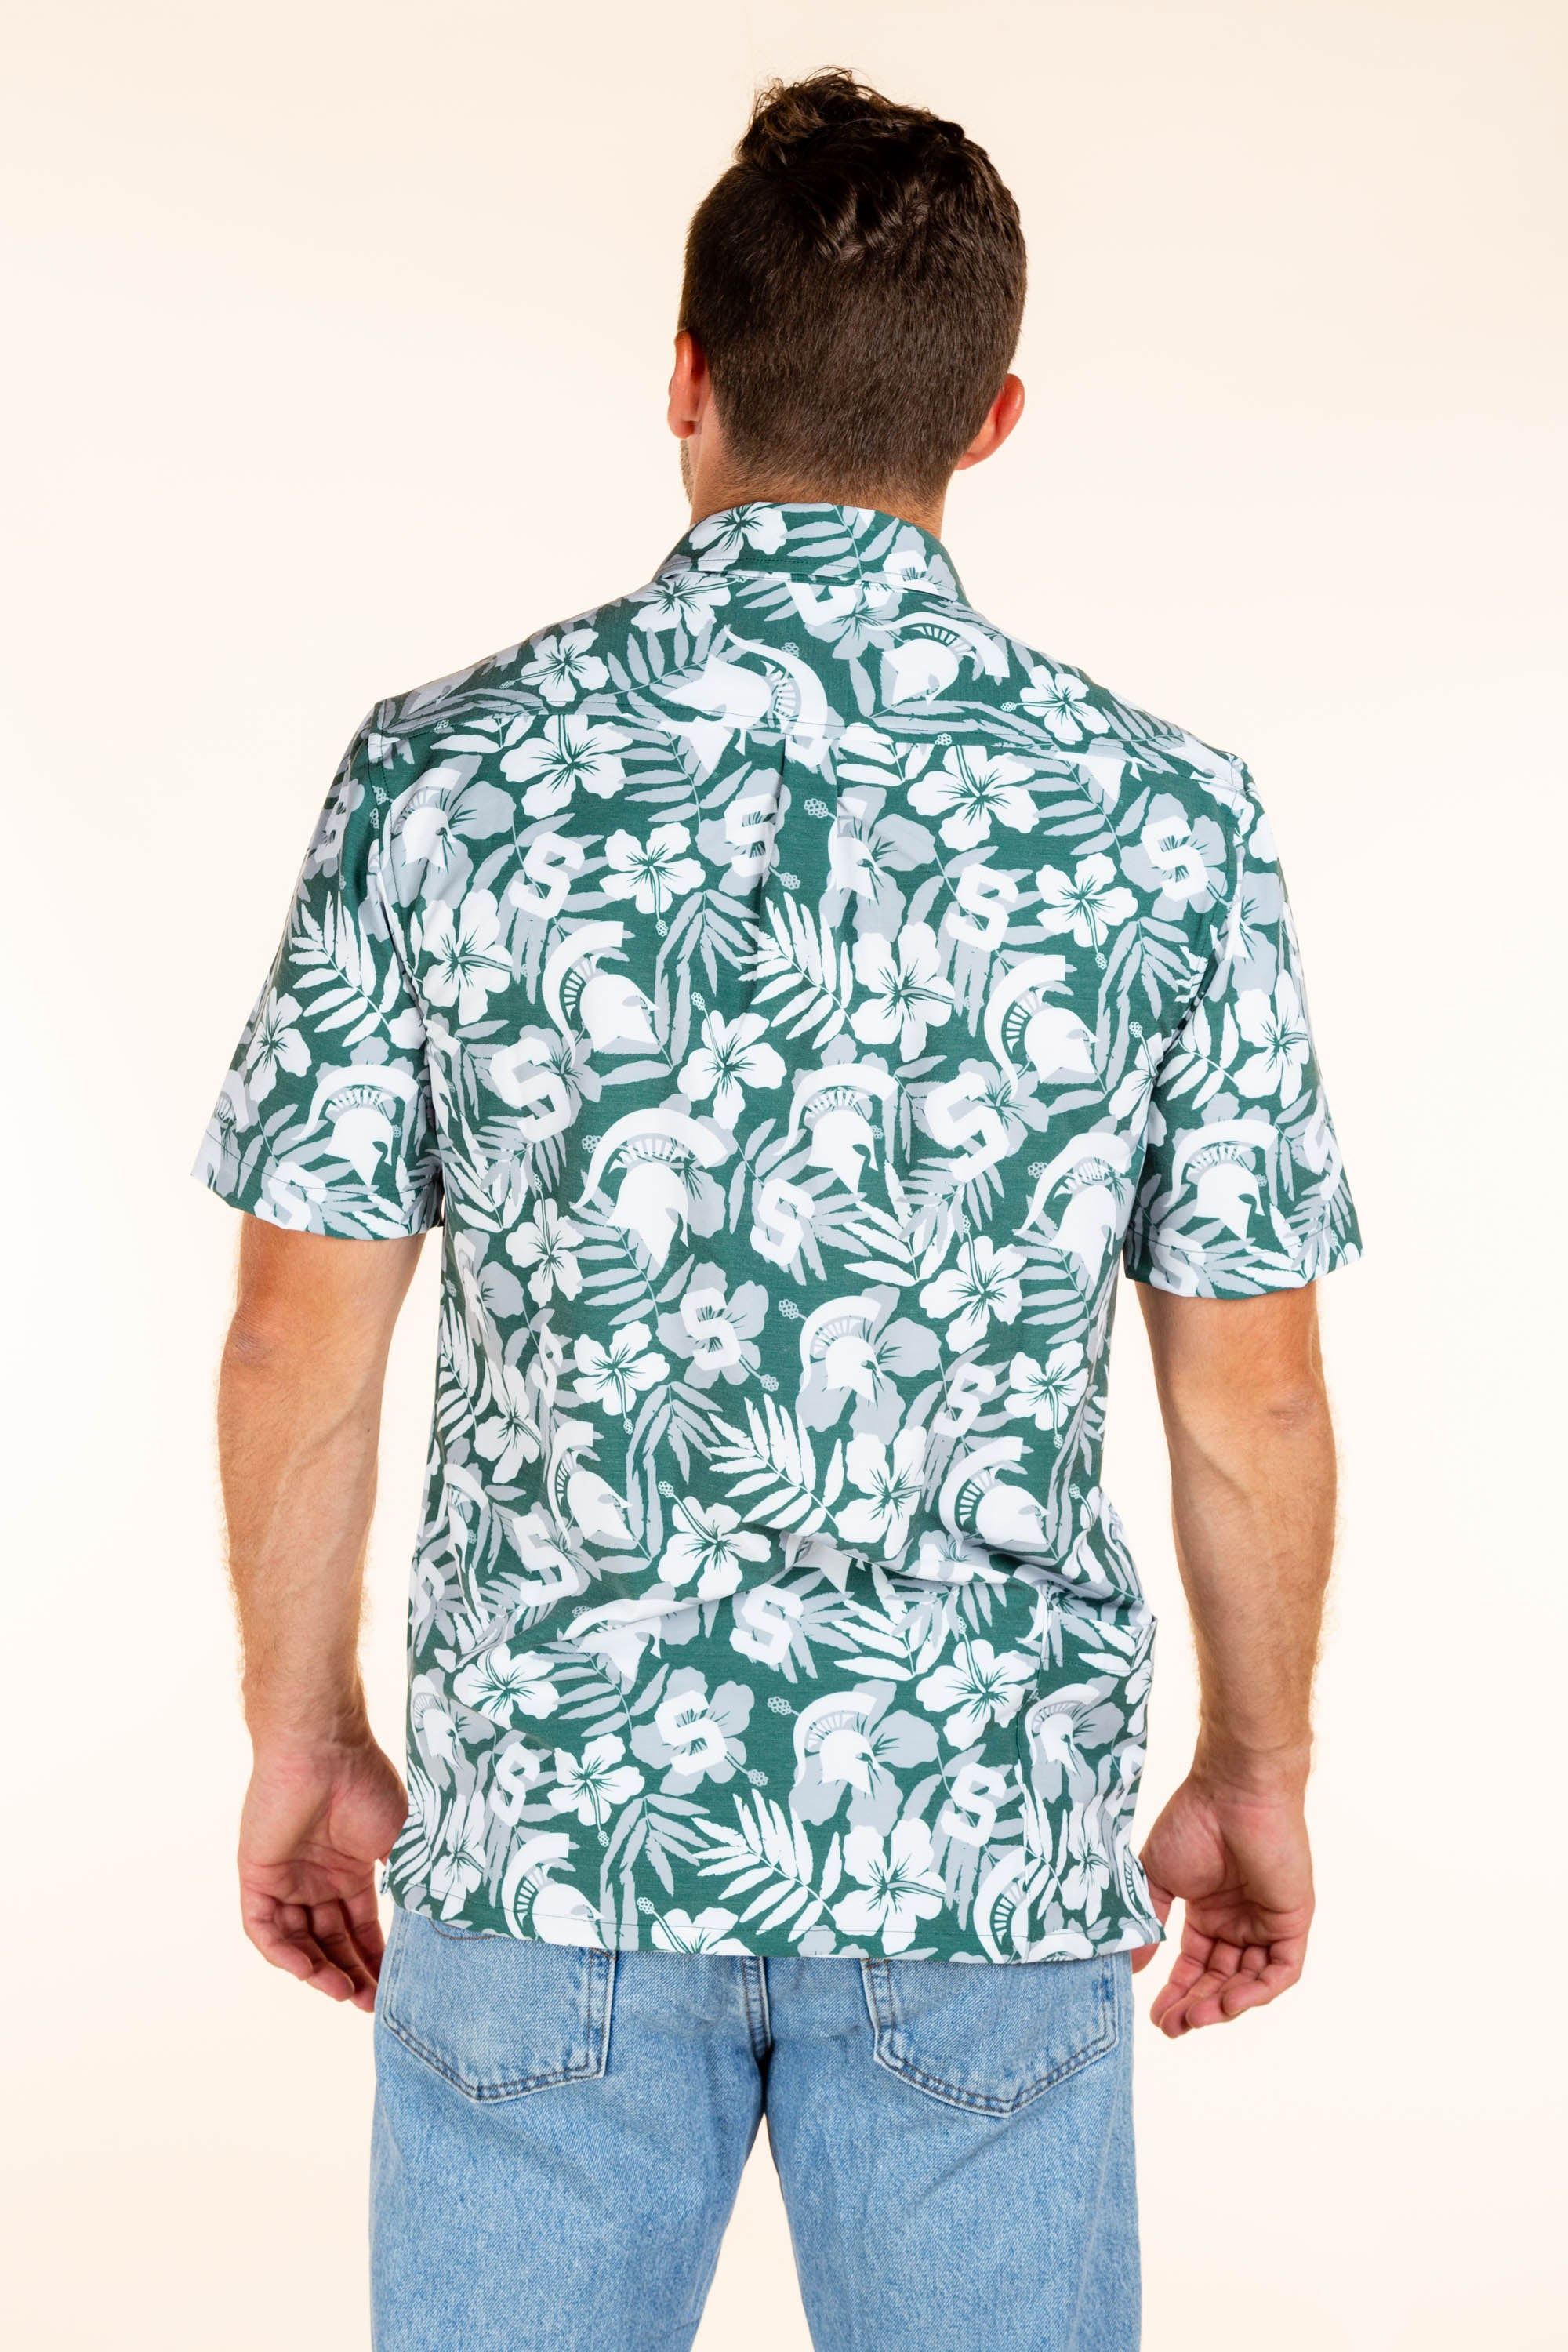 MSU Game Day Hawaiian Shirt